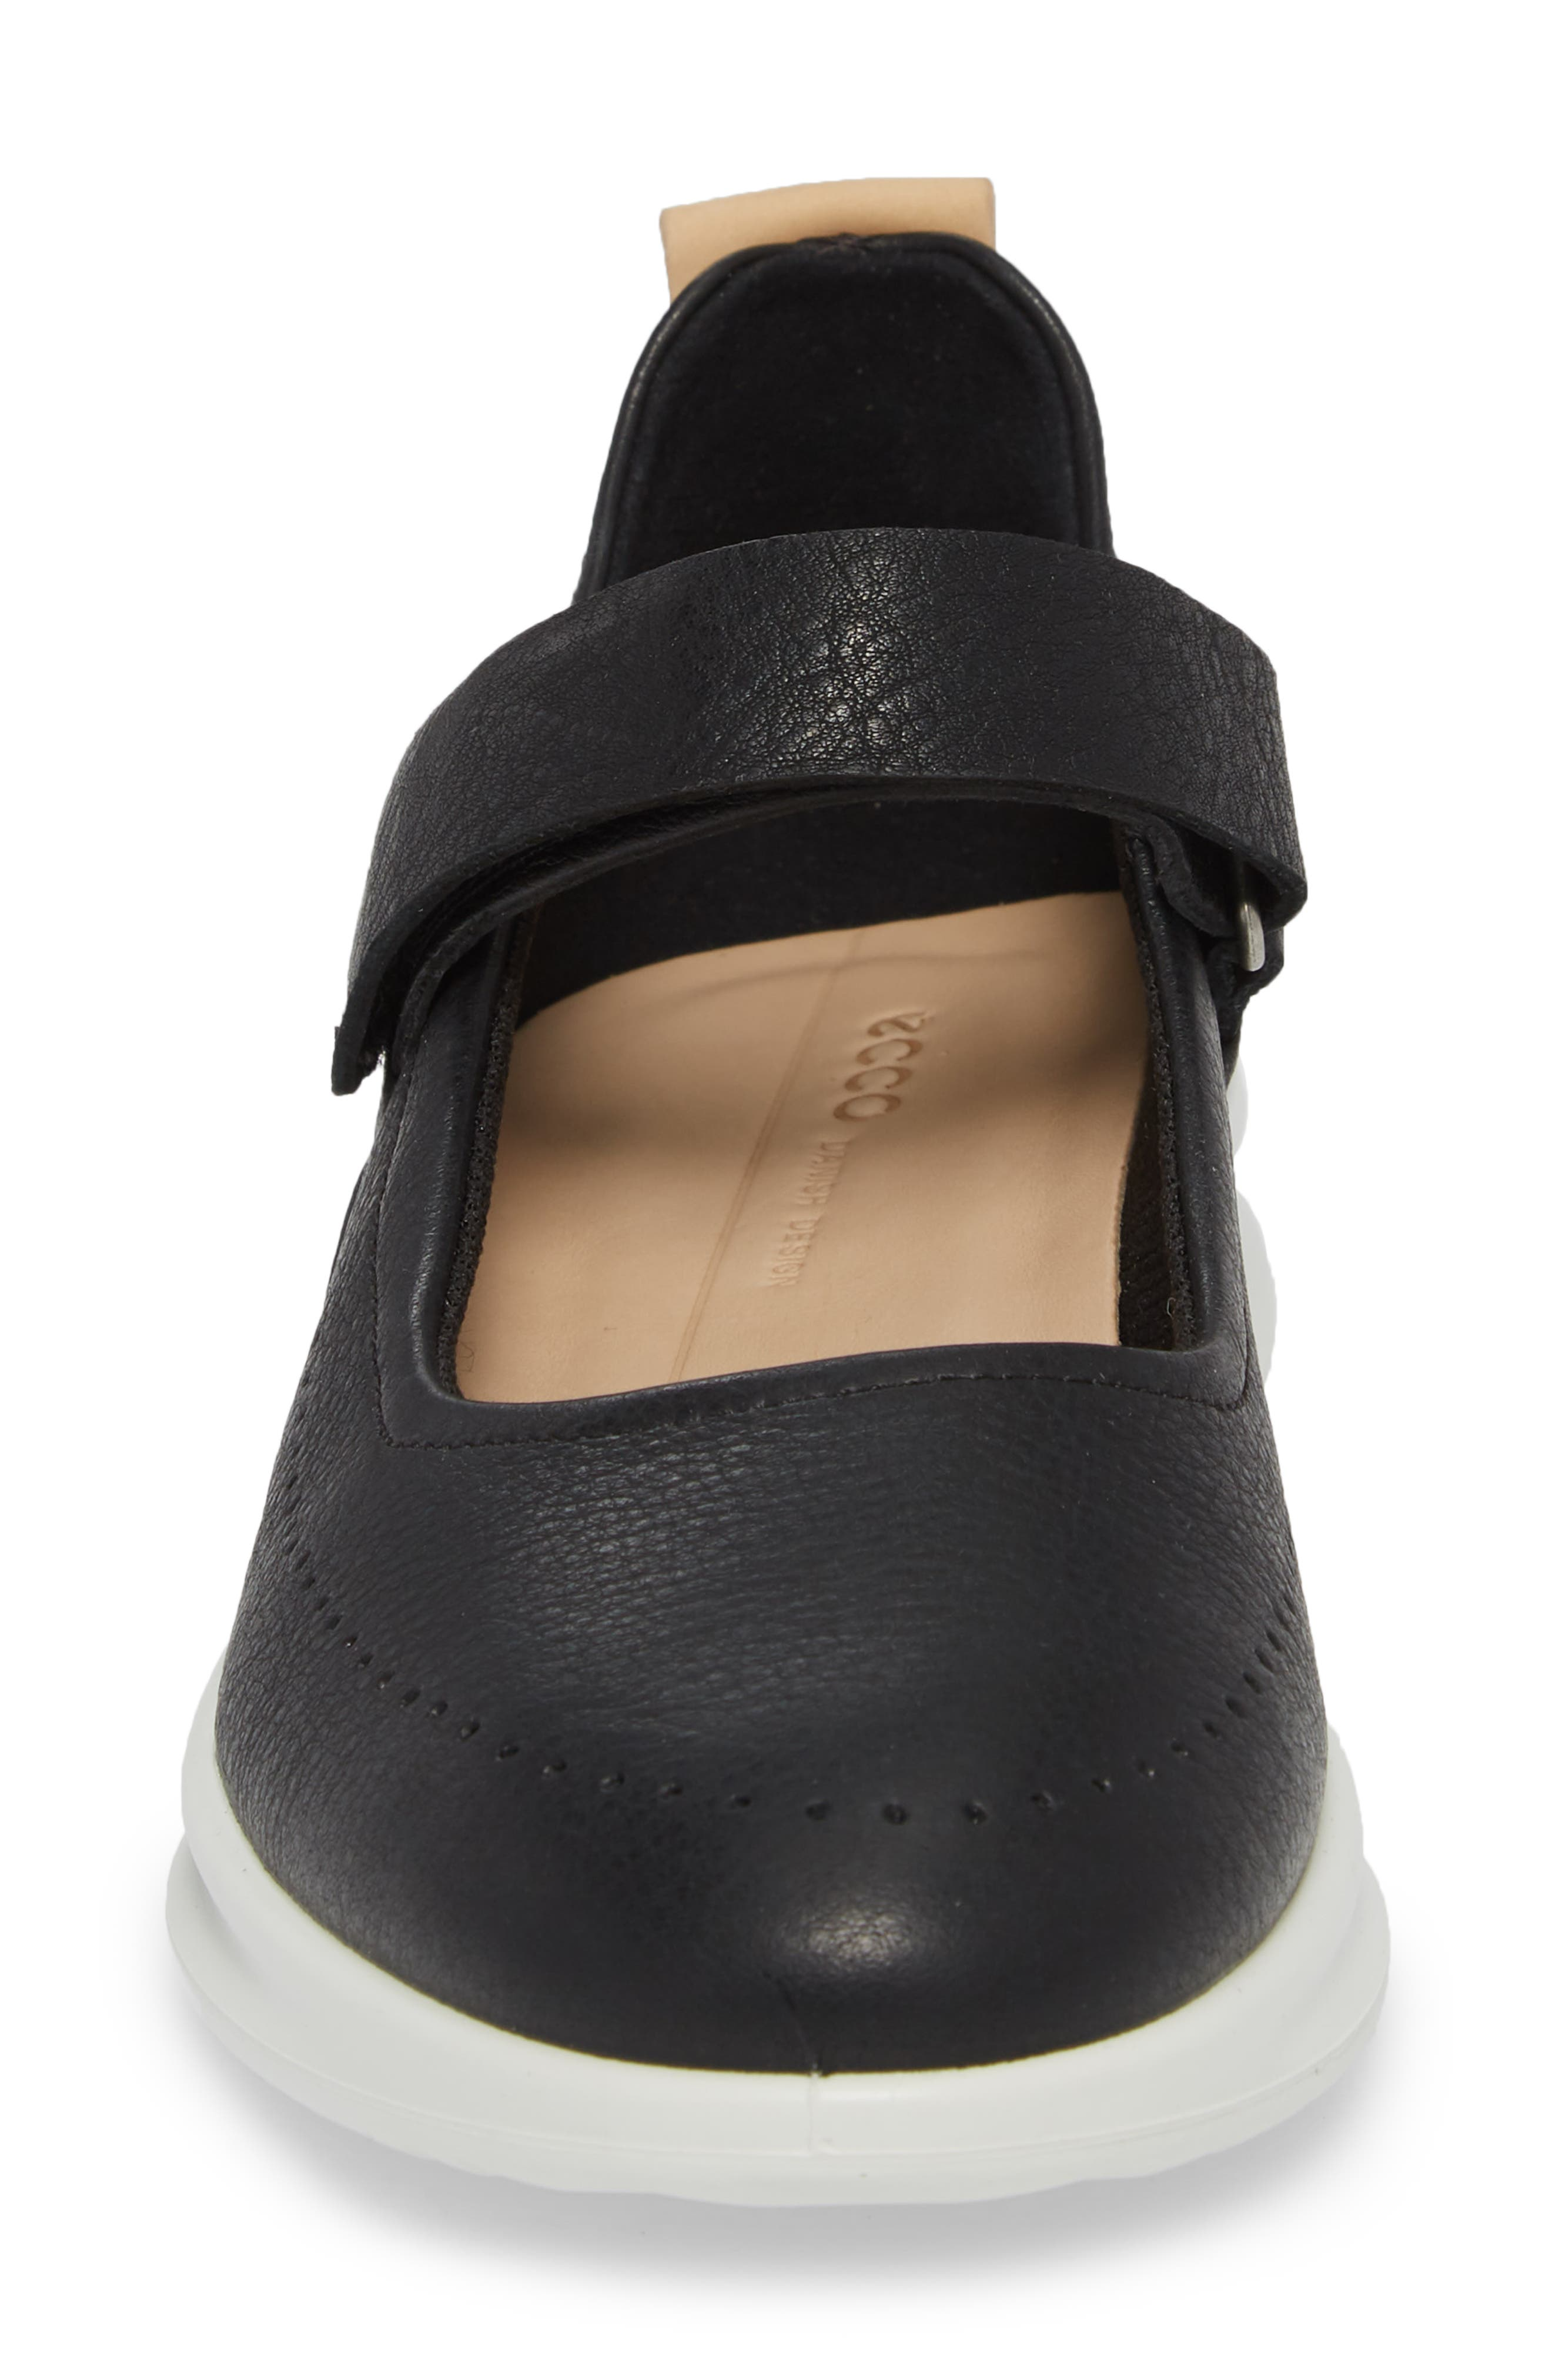 Aquet Mary Jane Wedge Sneaker,                             Alternate thumbnail 4, color,                             Black Leather